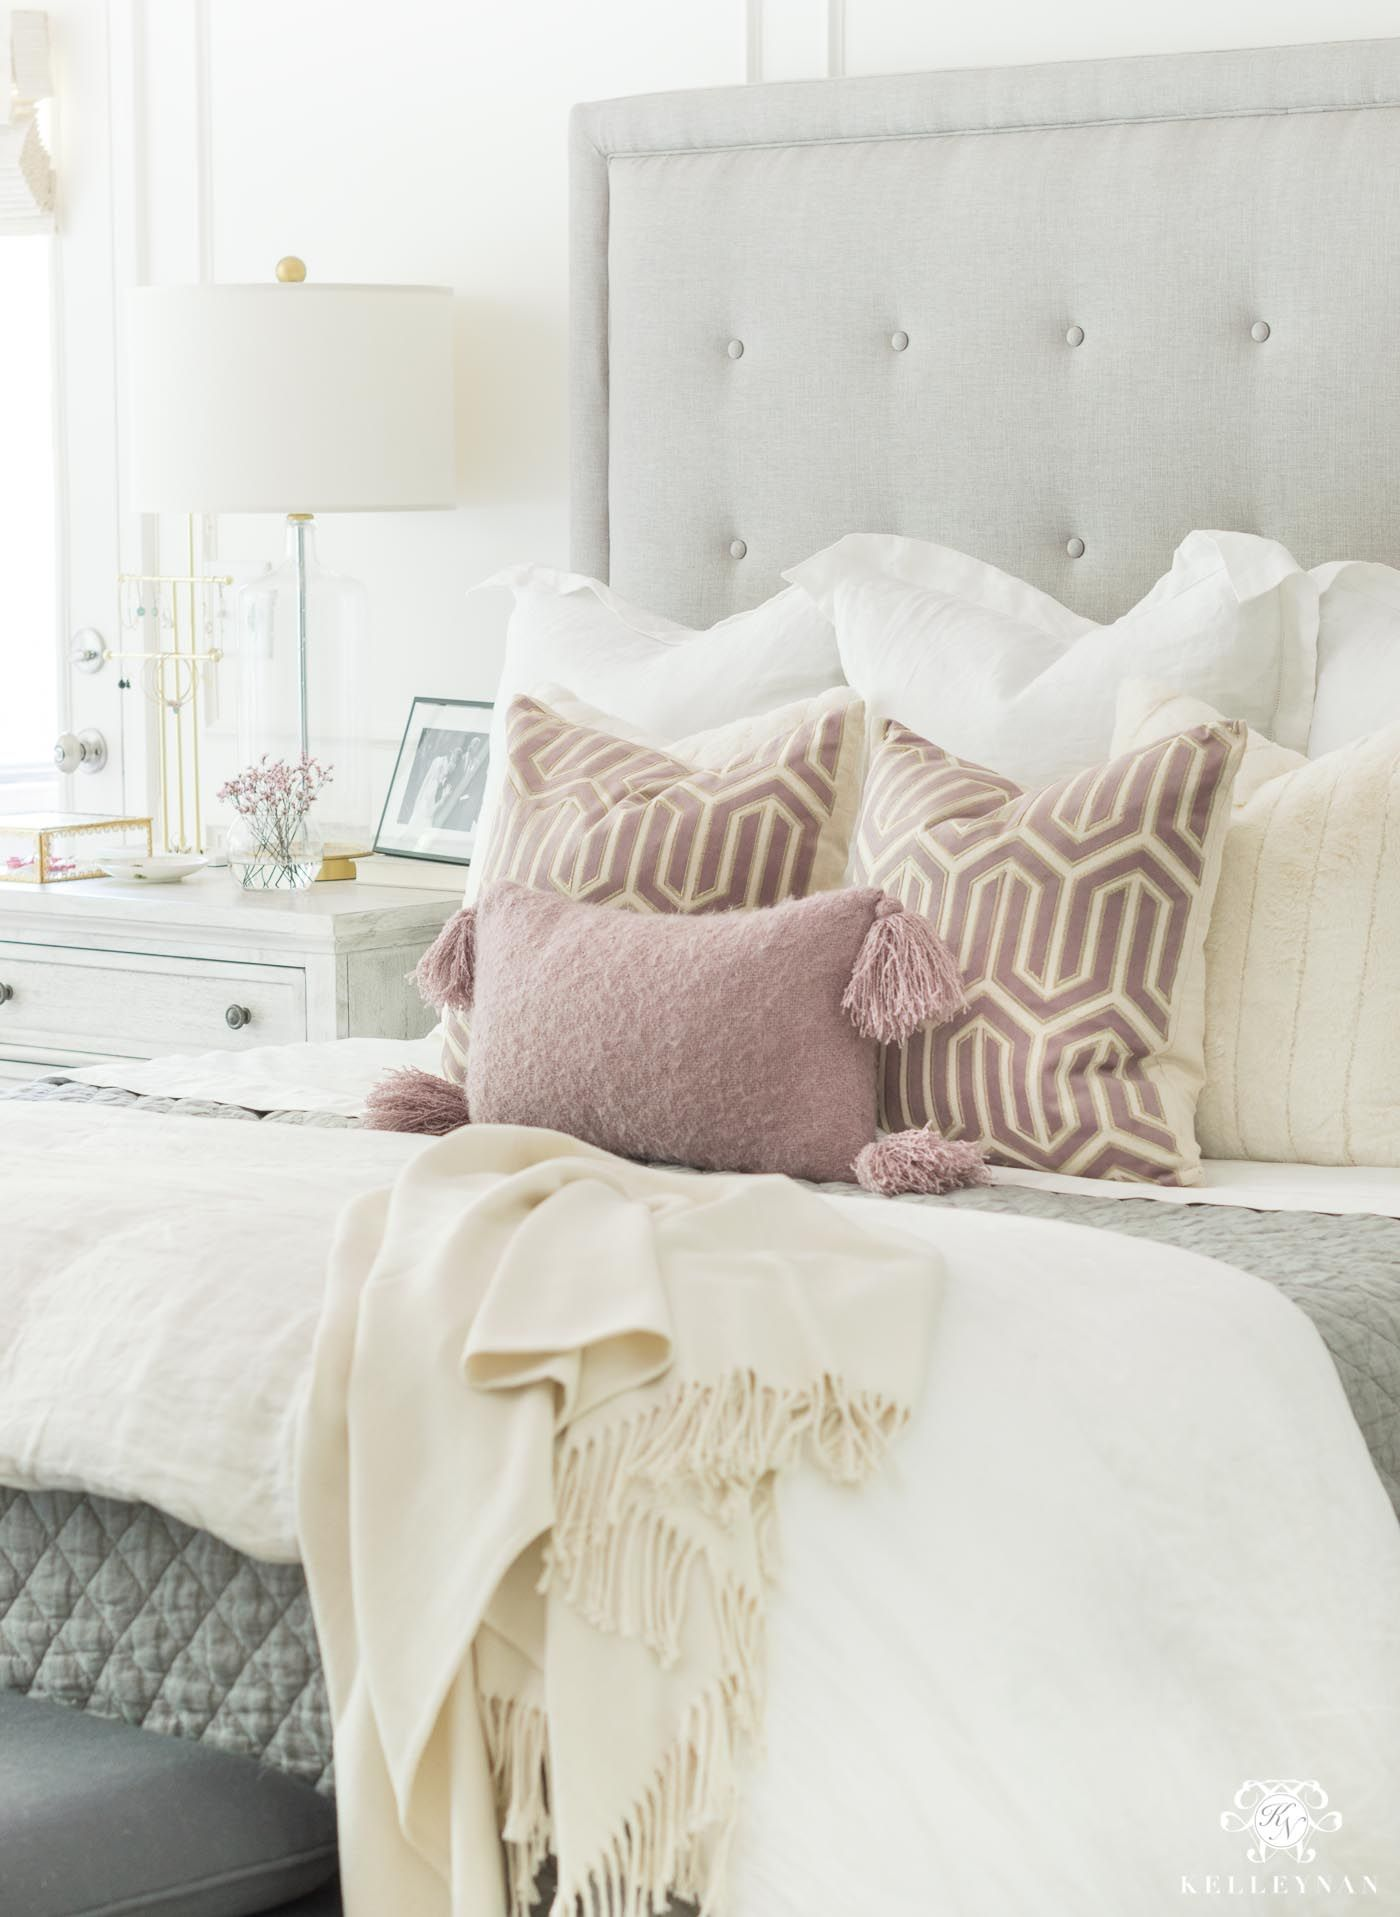 How To Layer A Bed With Pillows And Blankets Bedding Masterbedroom